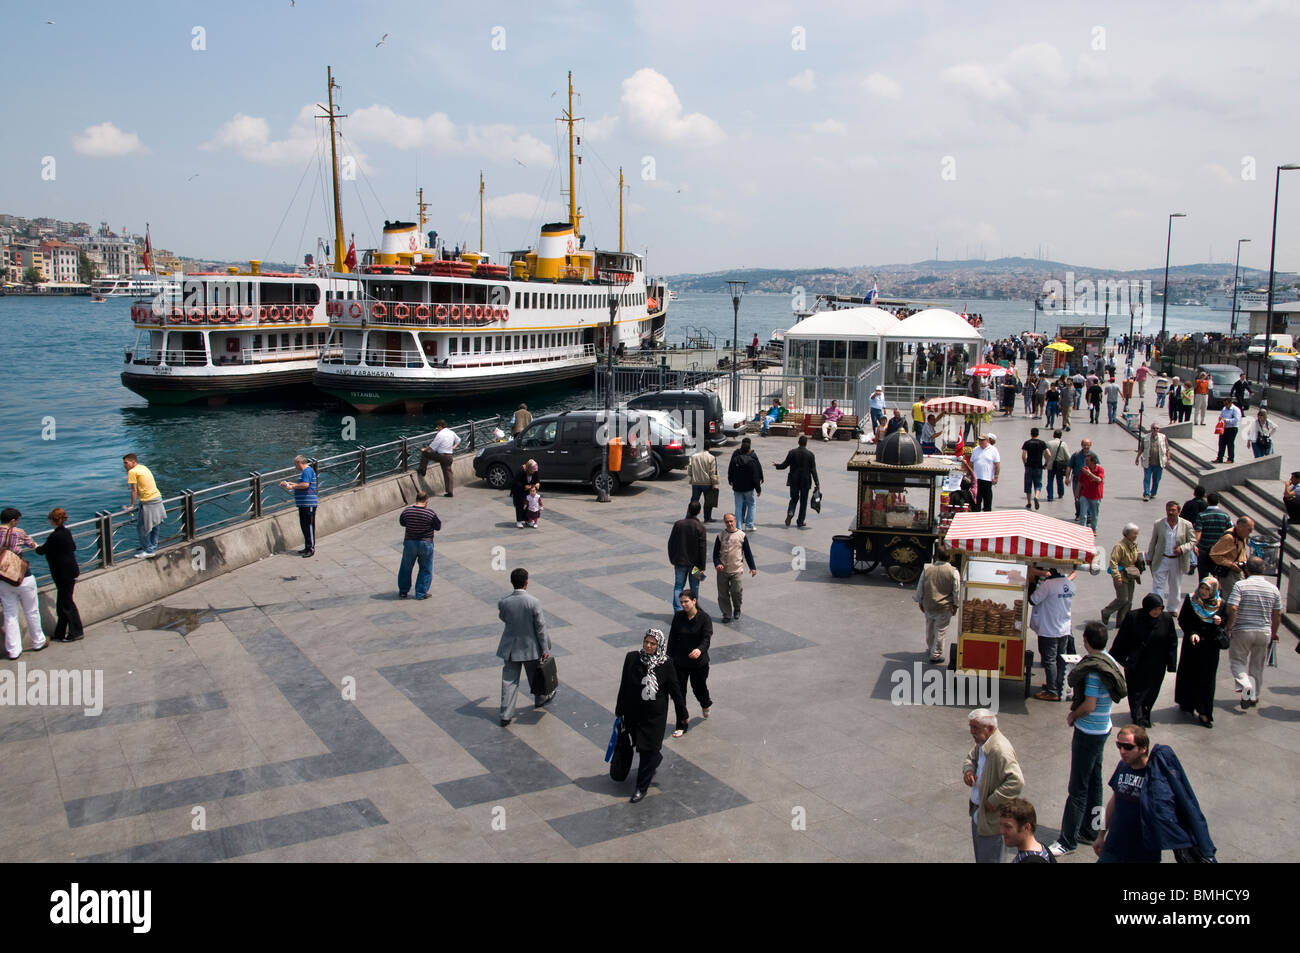 Golden Horn Istanbul Turkey transport ferry boat - Stock Image